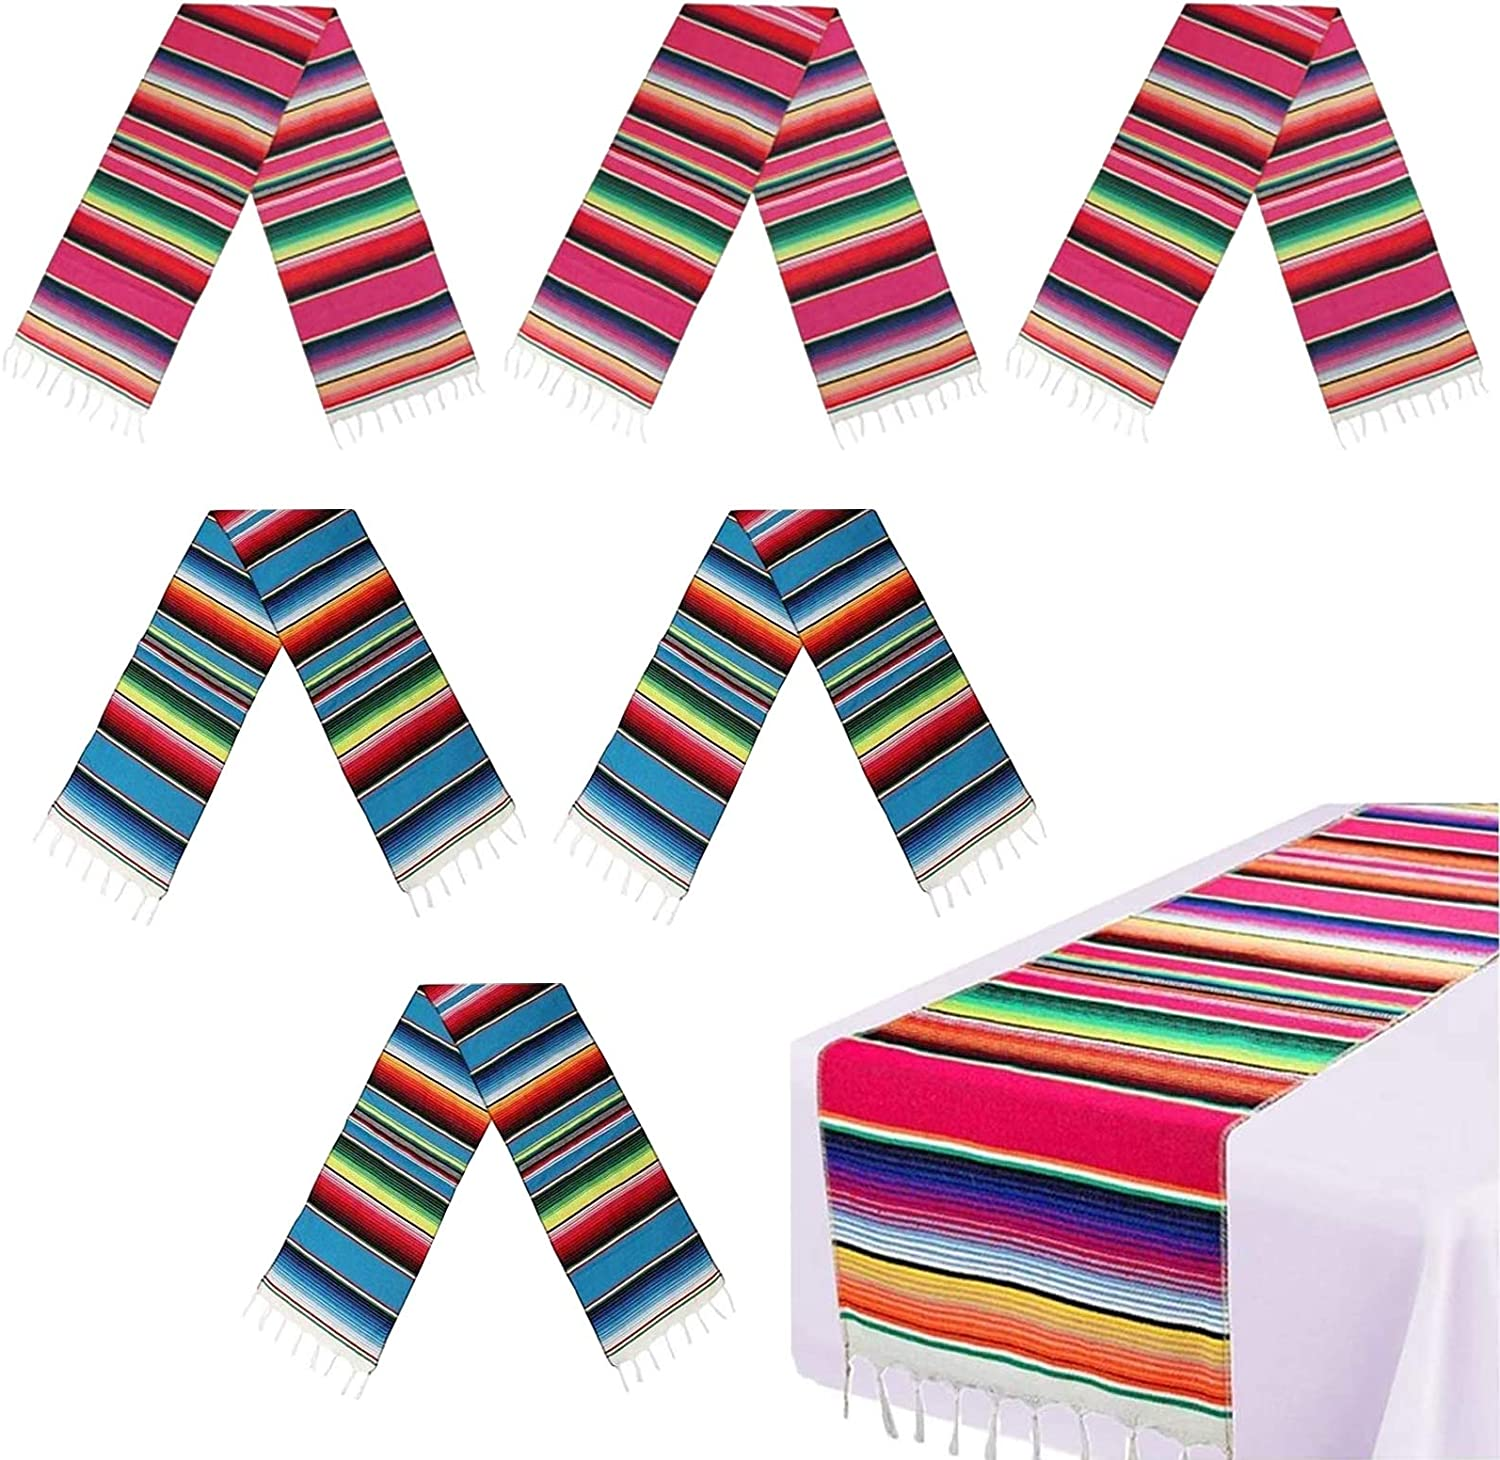 6 Pack Mexican Table Runner 14 Serape Super popular specialty store Inches Blanket 108 x Deluxe Color